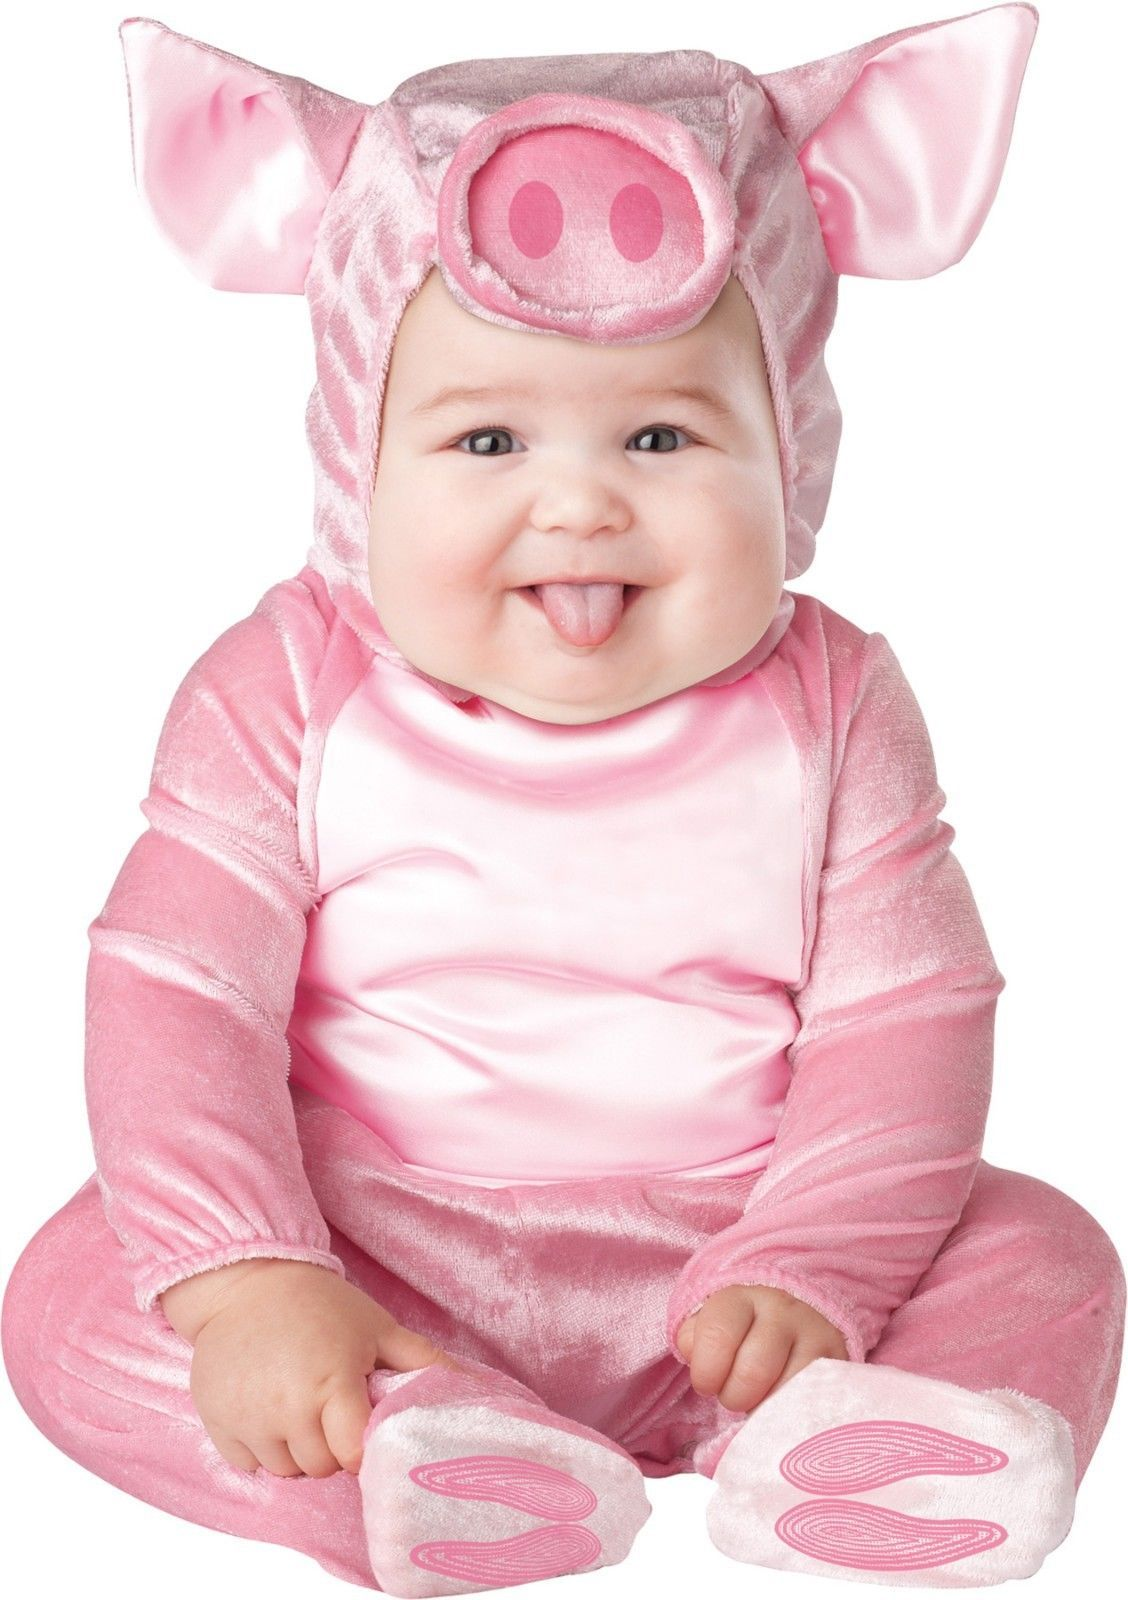 Infant/Toddler Pink Piggy Halloween Costume Fits 18-24 Months